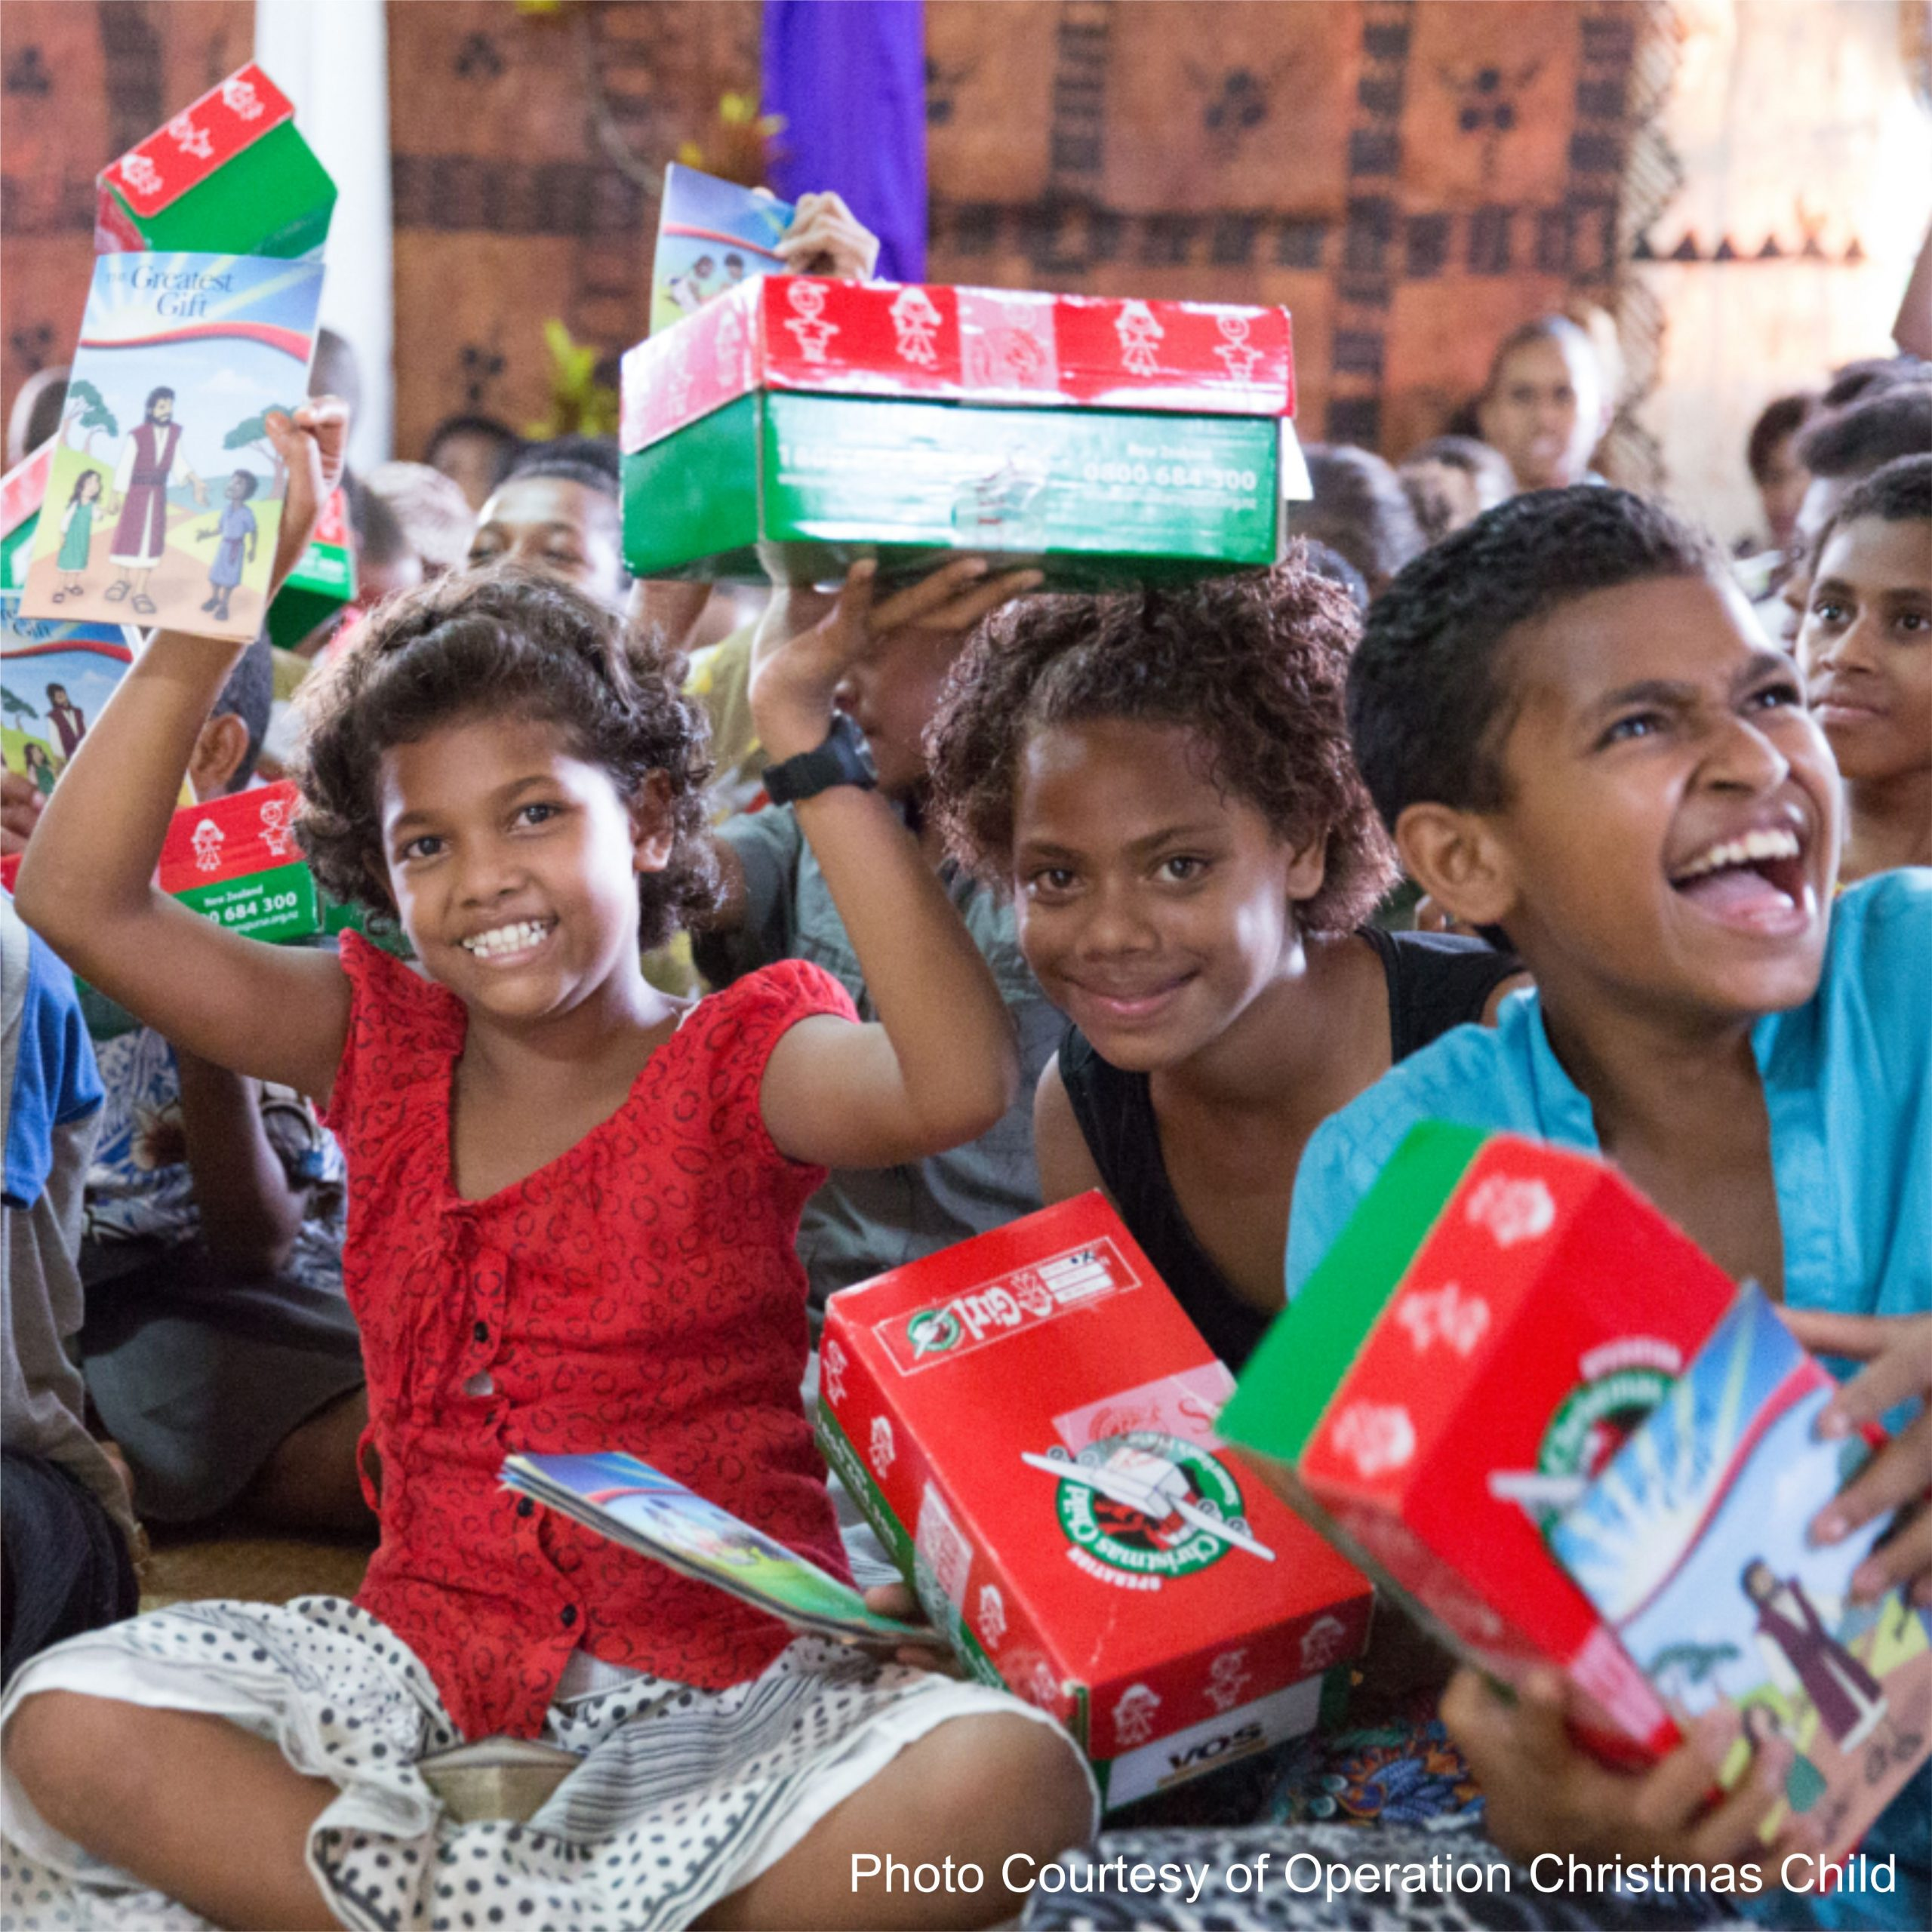 Things to Make for Operation Christmas Child